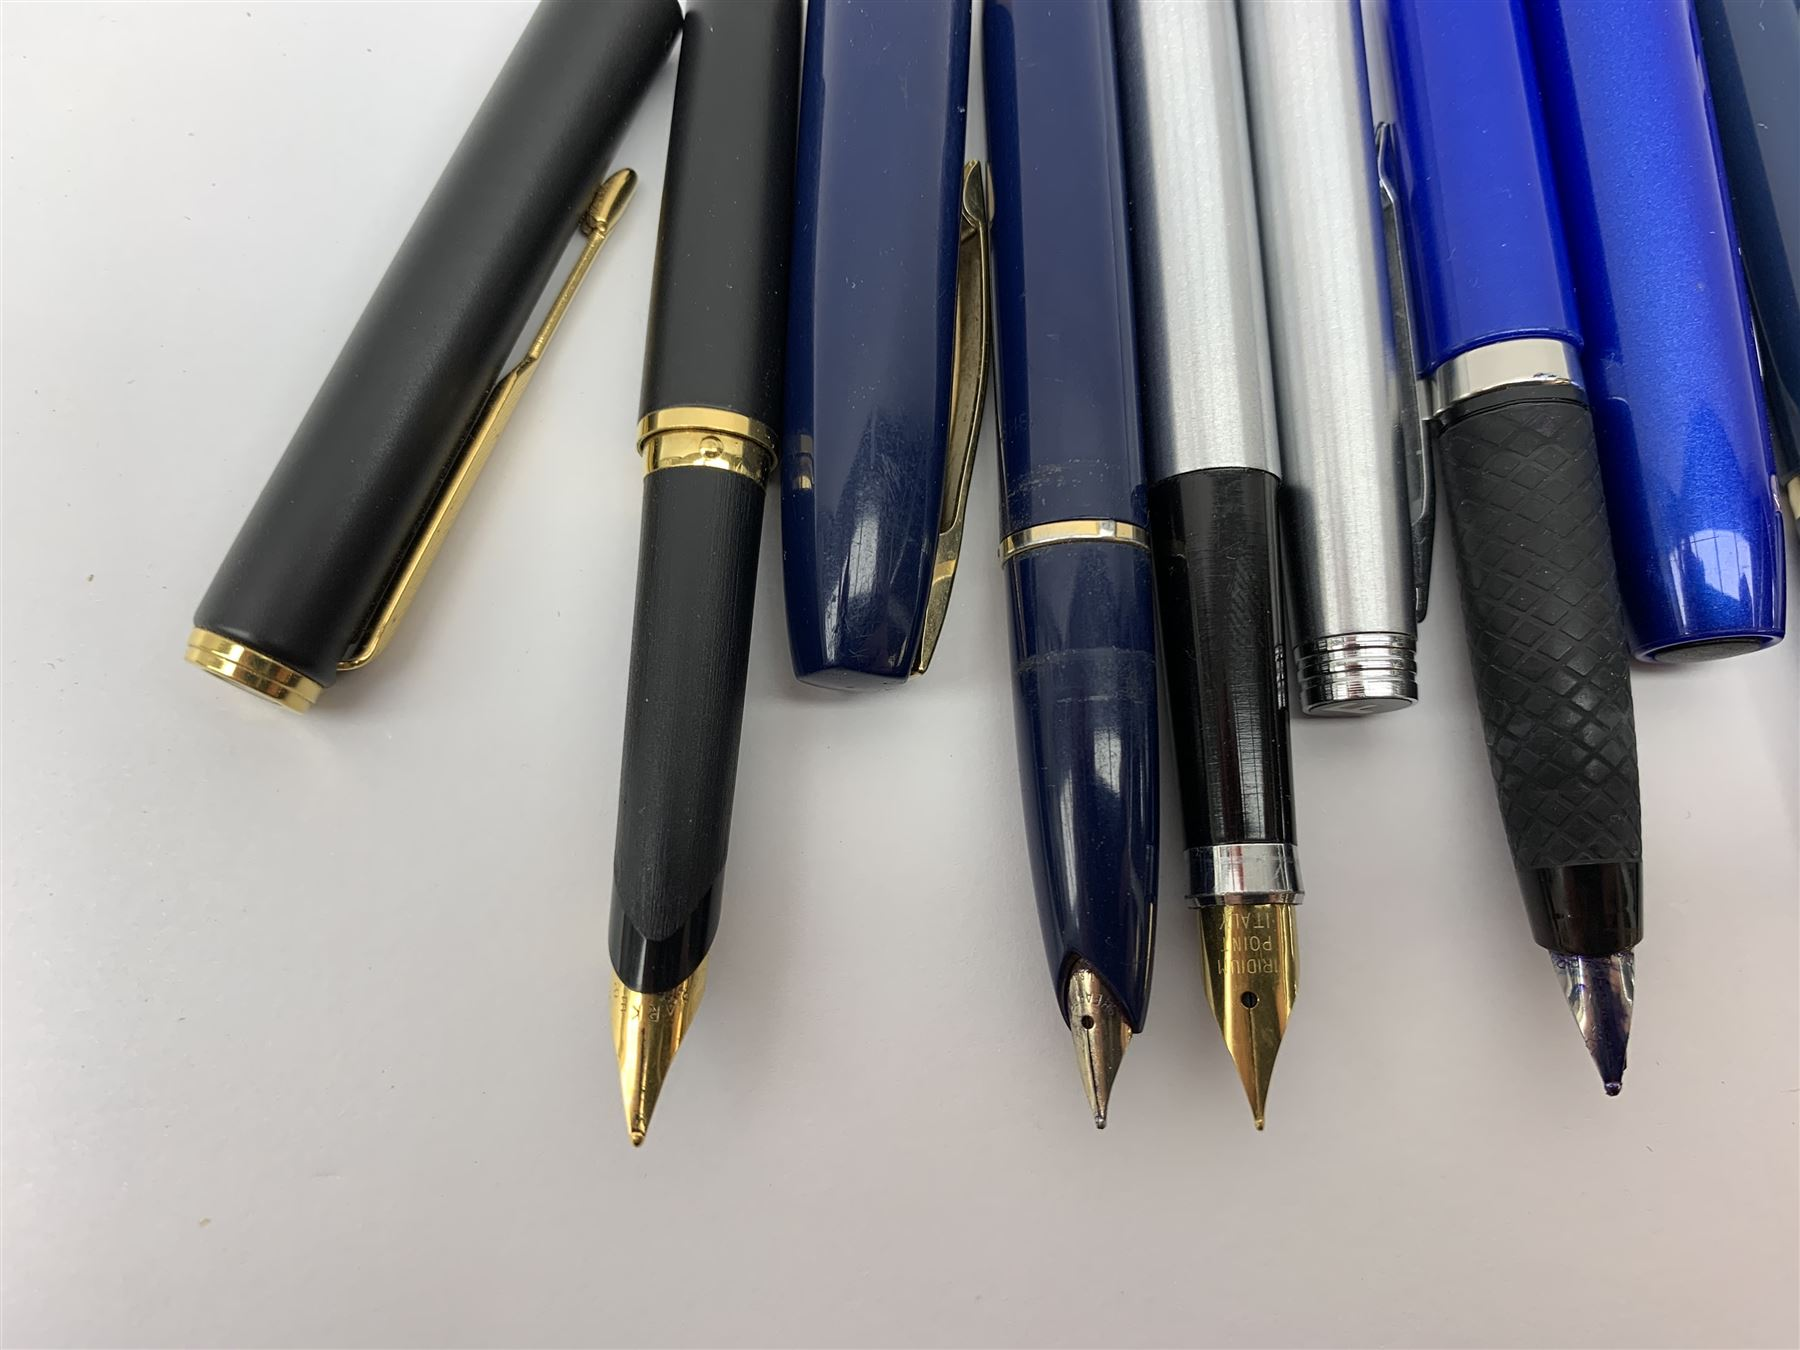 A group of fountain pens - Image 2 of 4